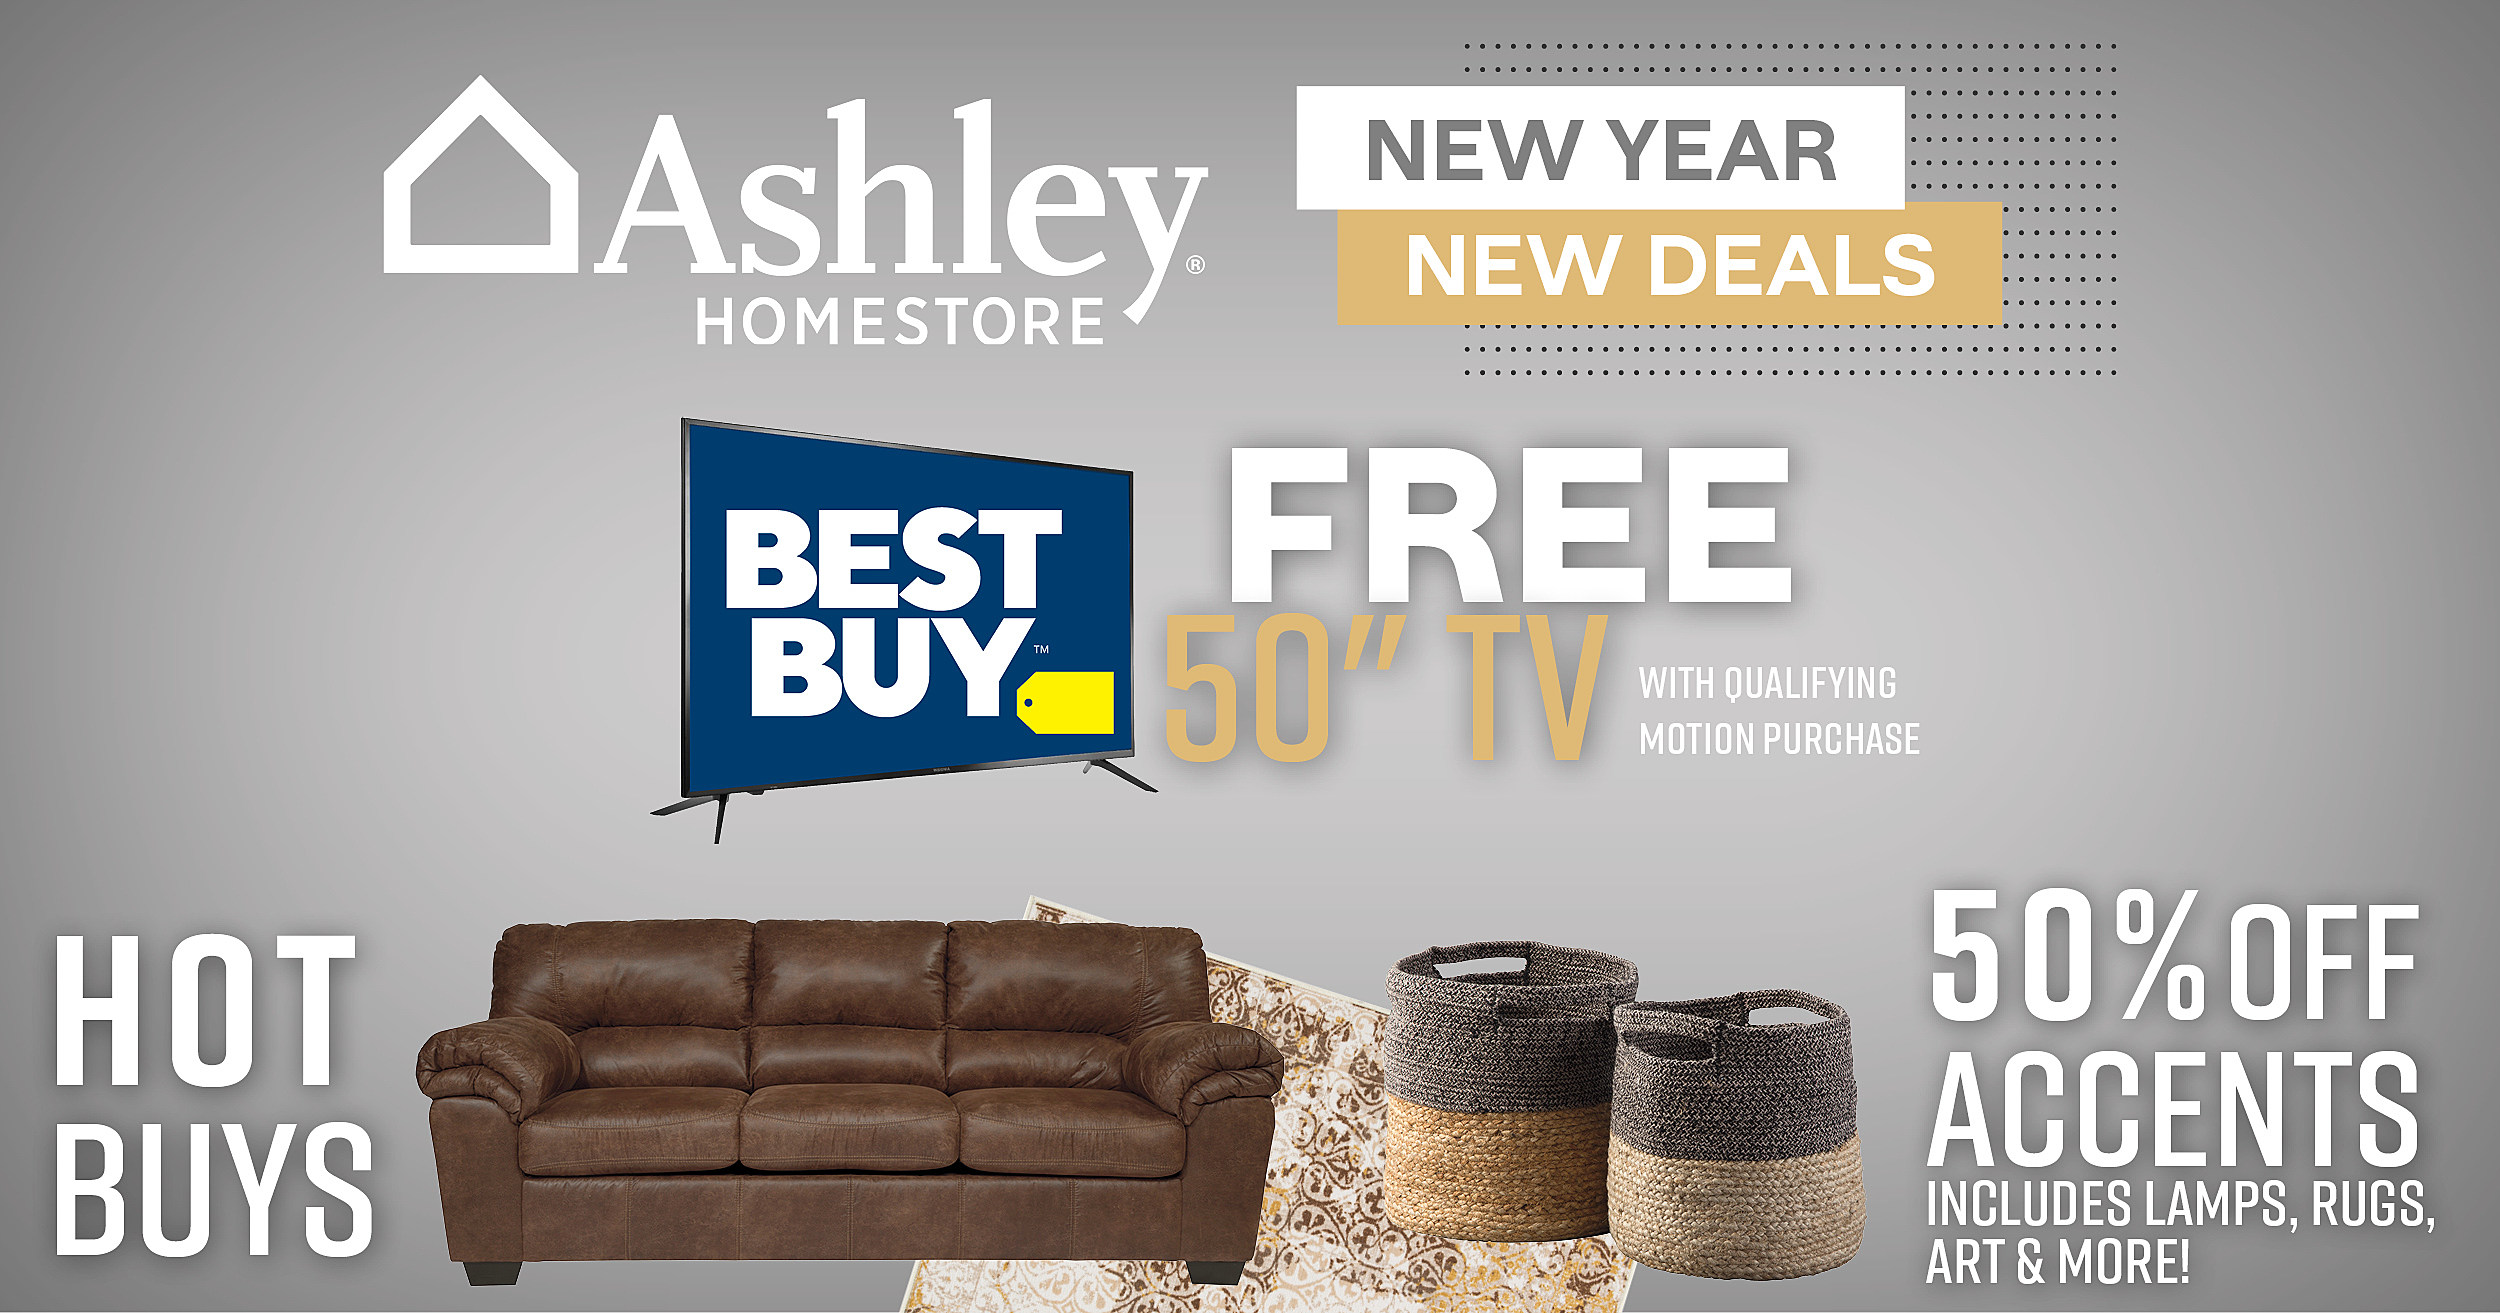 New Year New Deals Free Tvs More At Local Furniture Spot